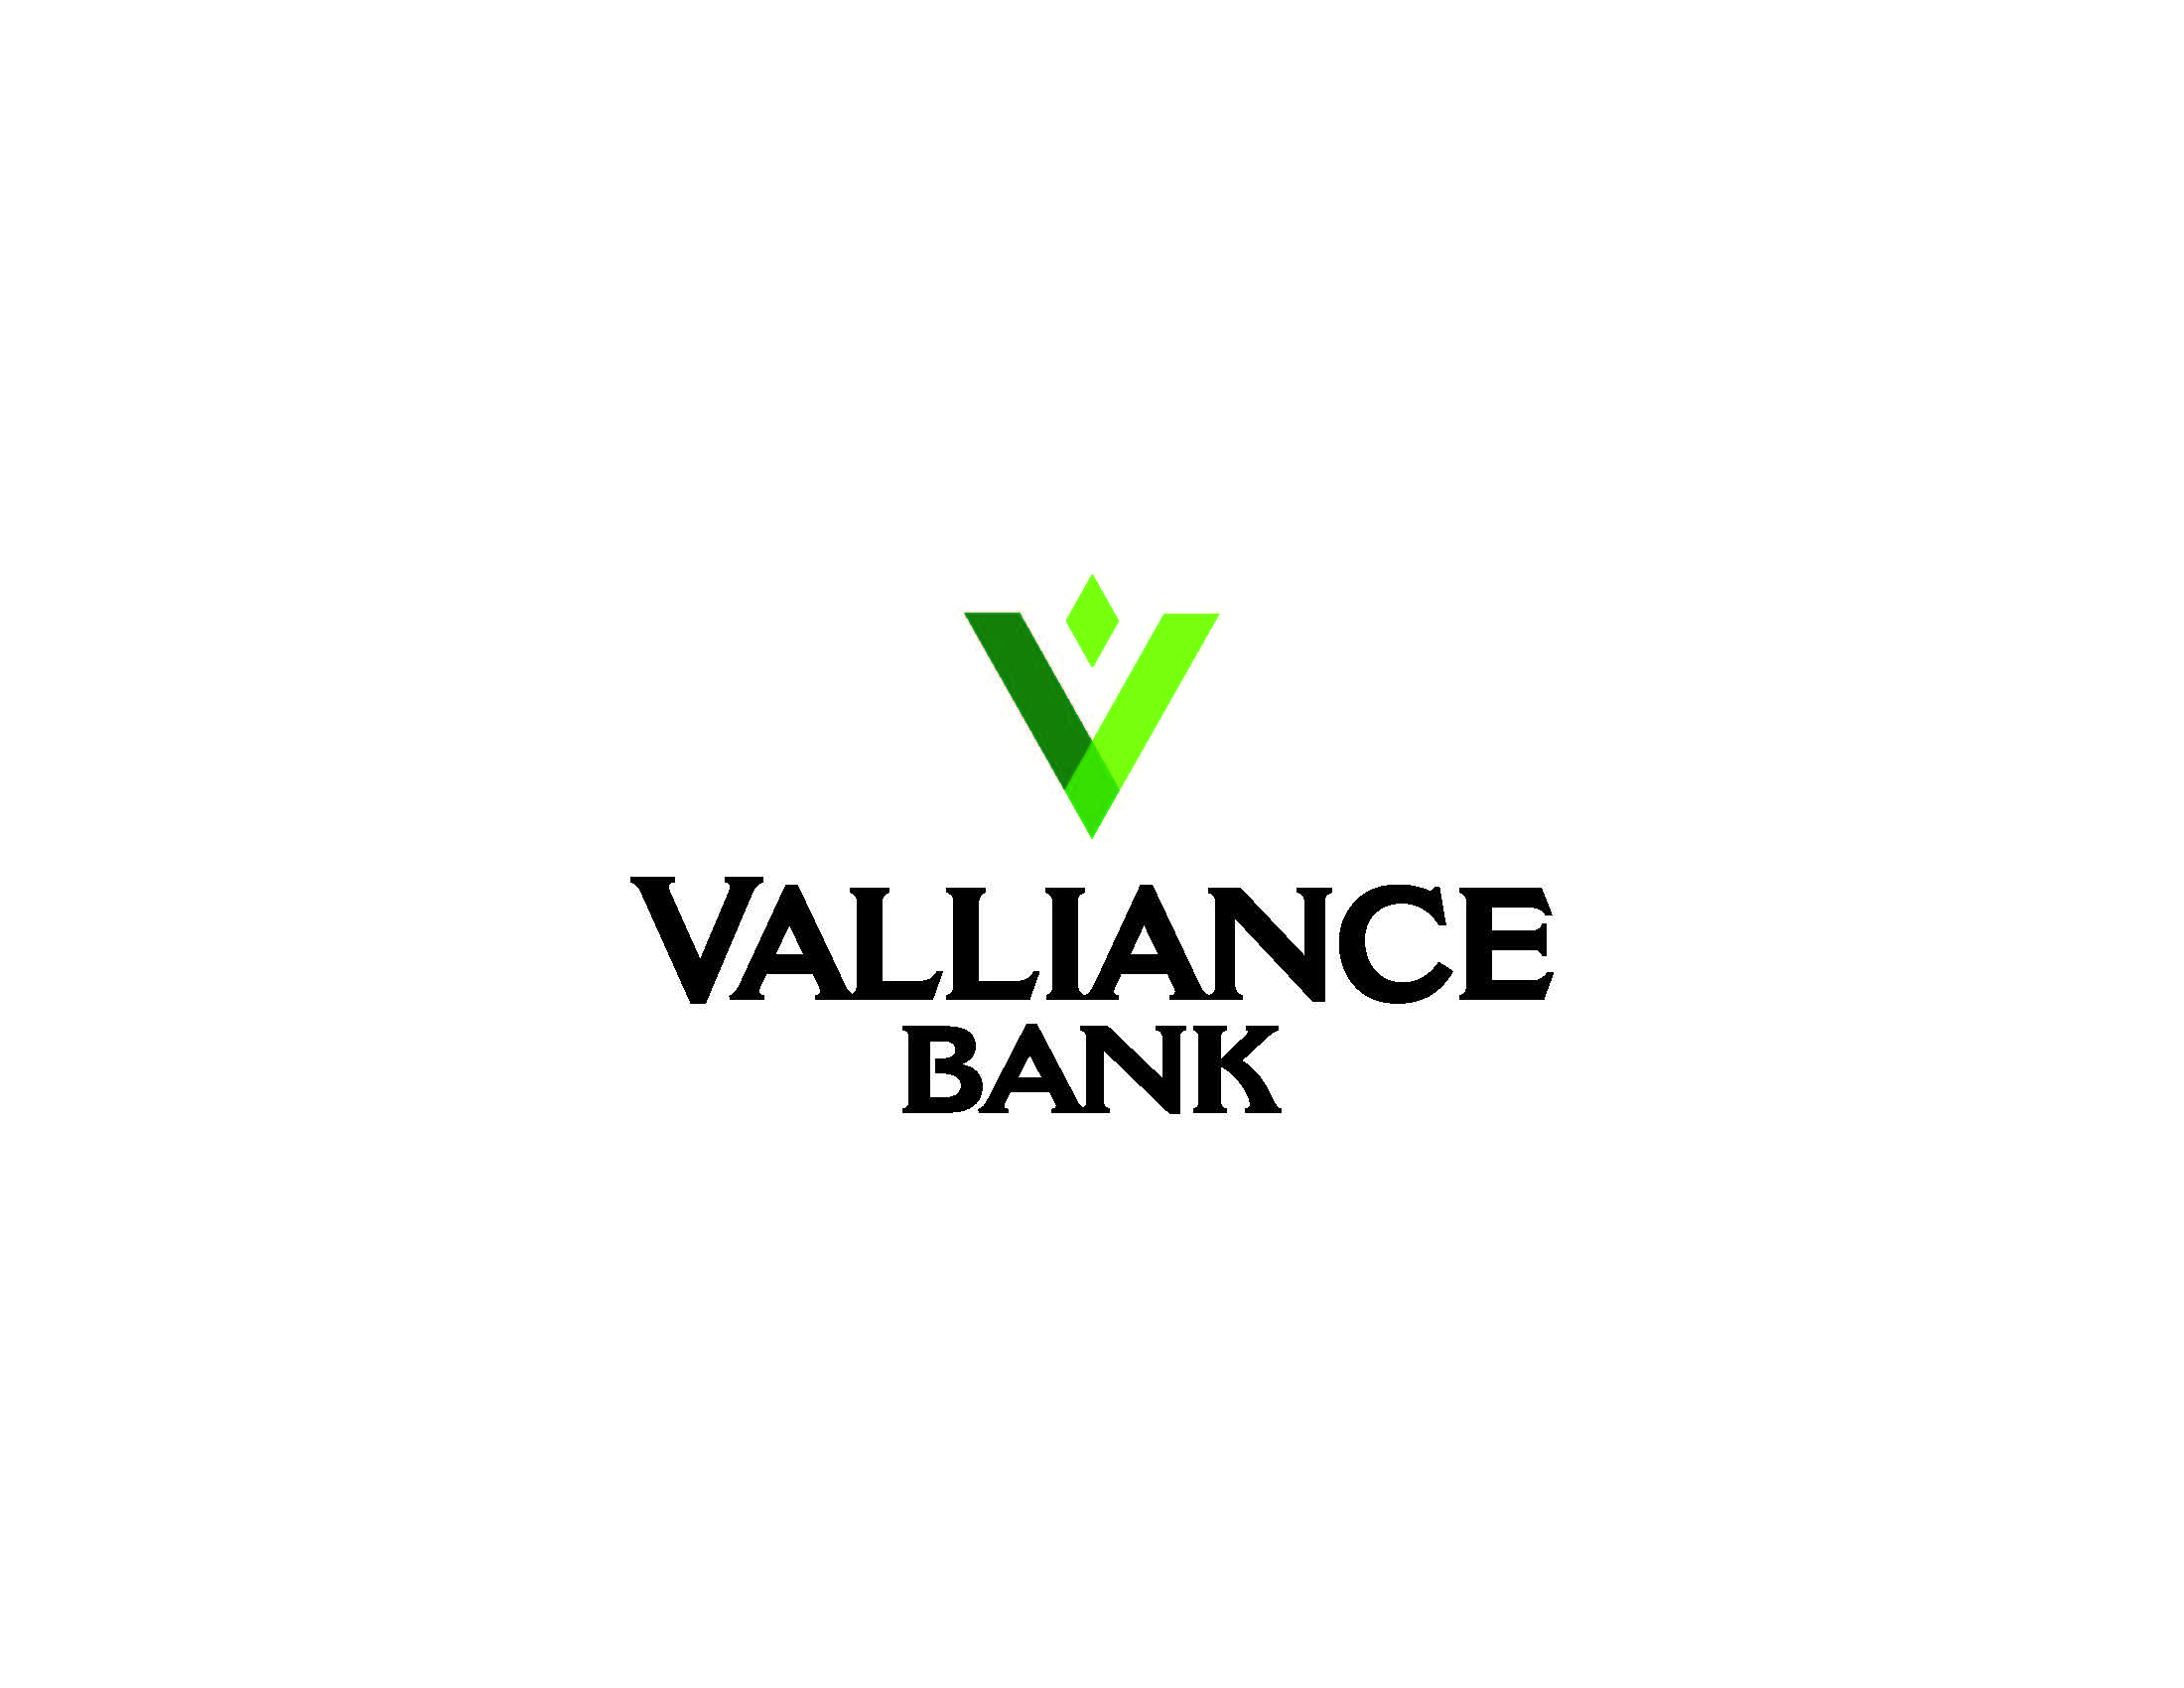 valliance-bank-logo-stacked